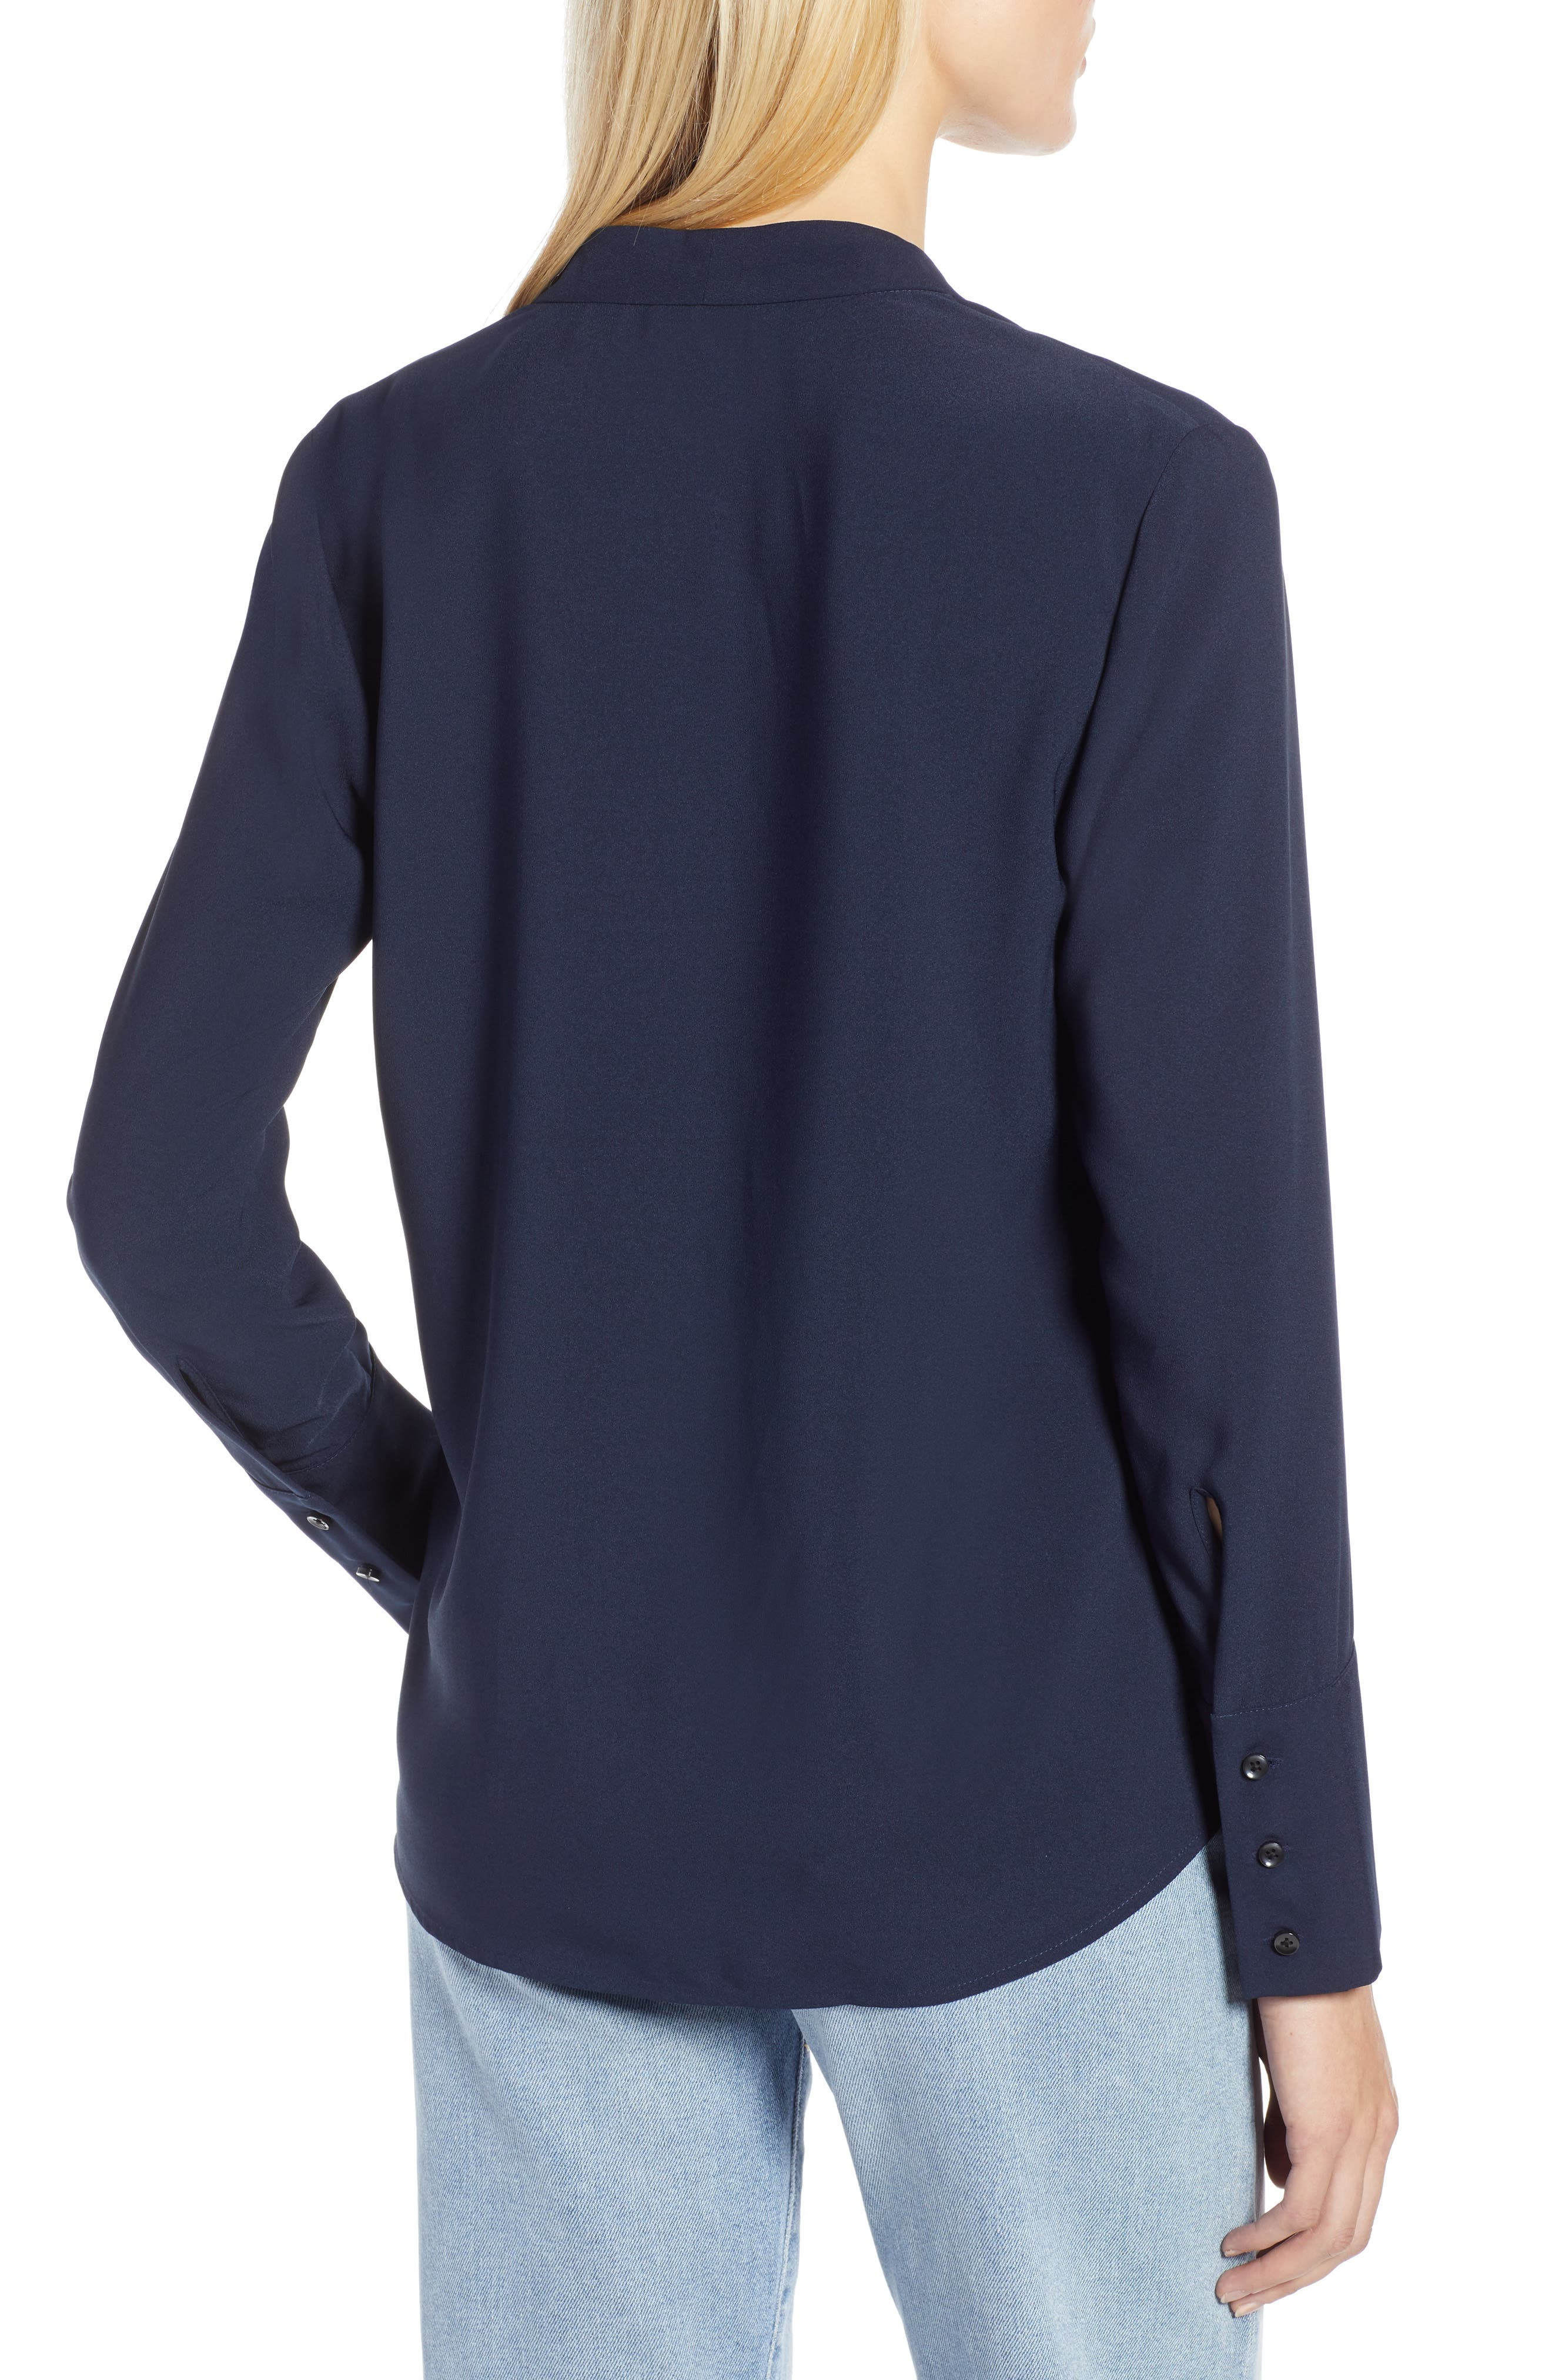 x Atlantic-Pacific Wrap Blouse,                             Alternate thumbnail 2, color,                             NAVY BLAZER